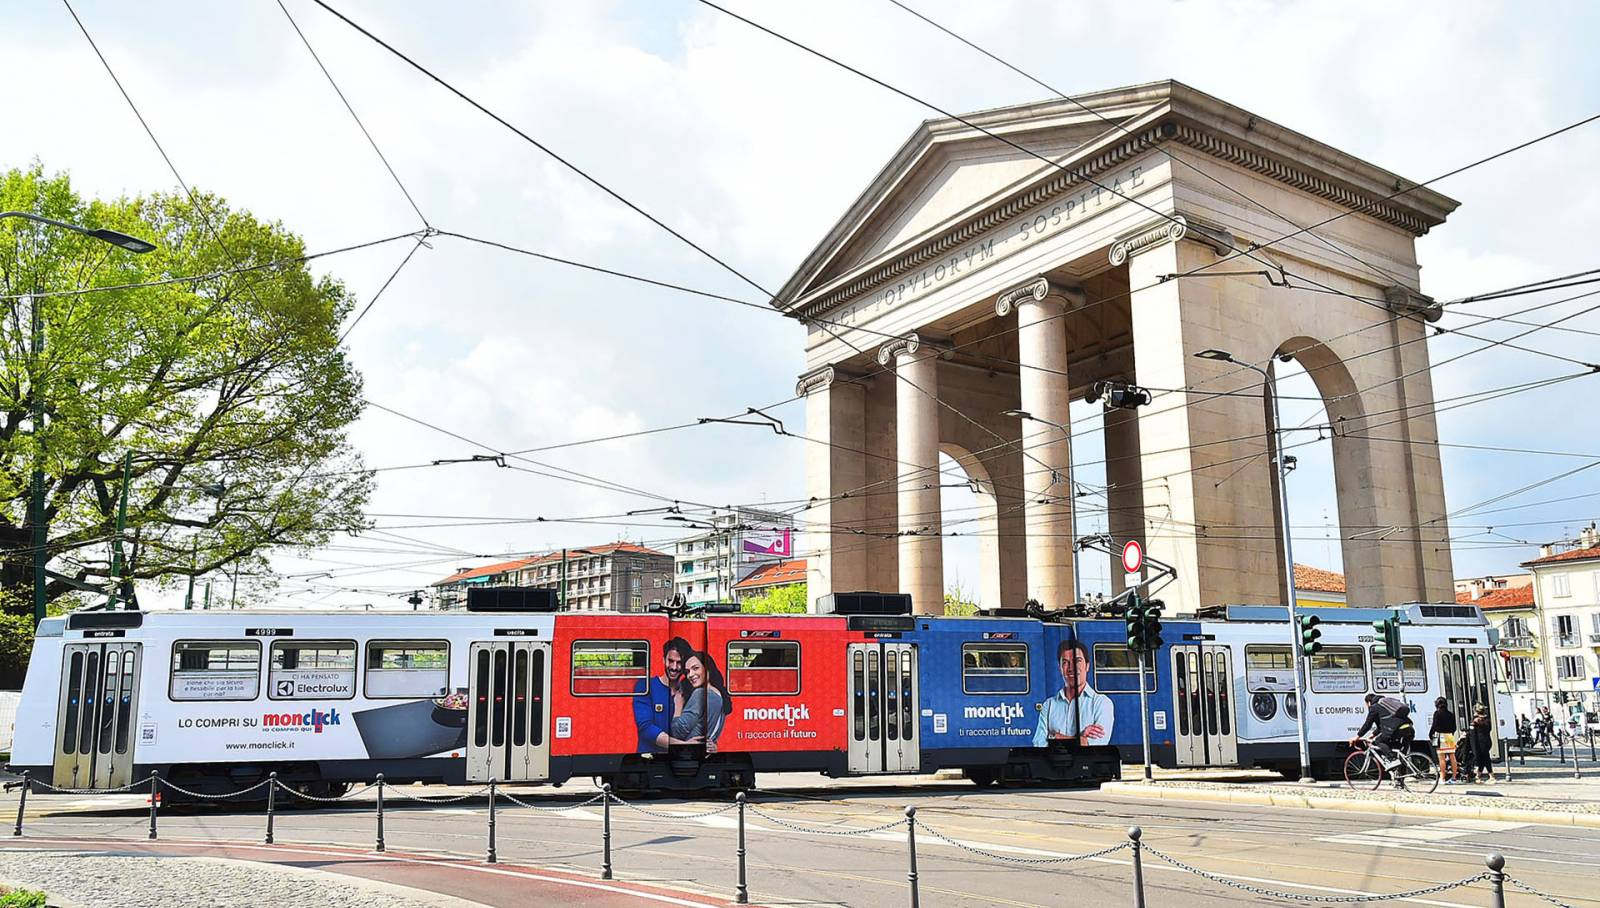 IGPDecaux OOH advertising in Milan Full-Wrap for Monclick